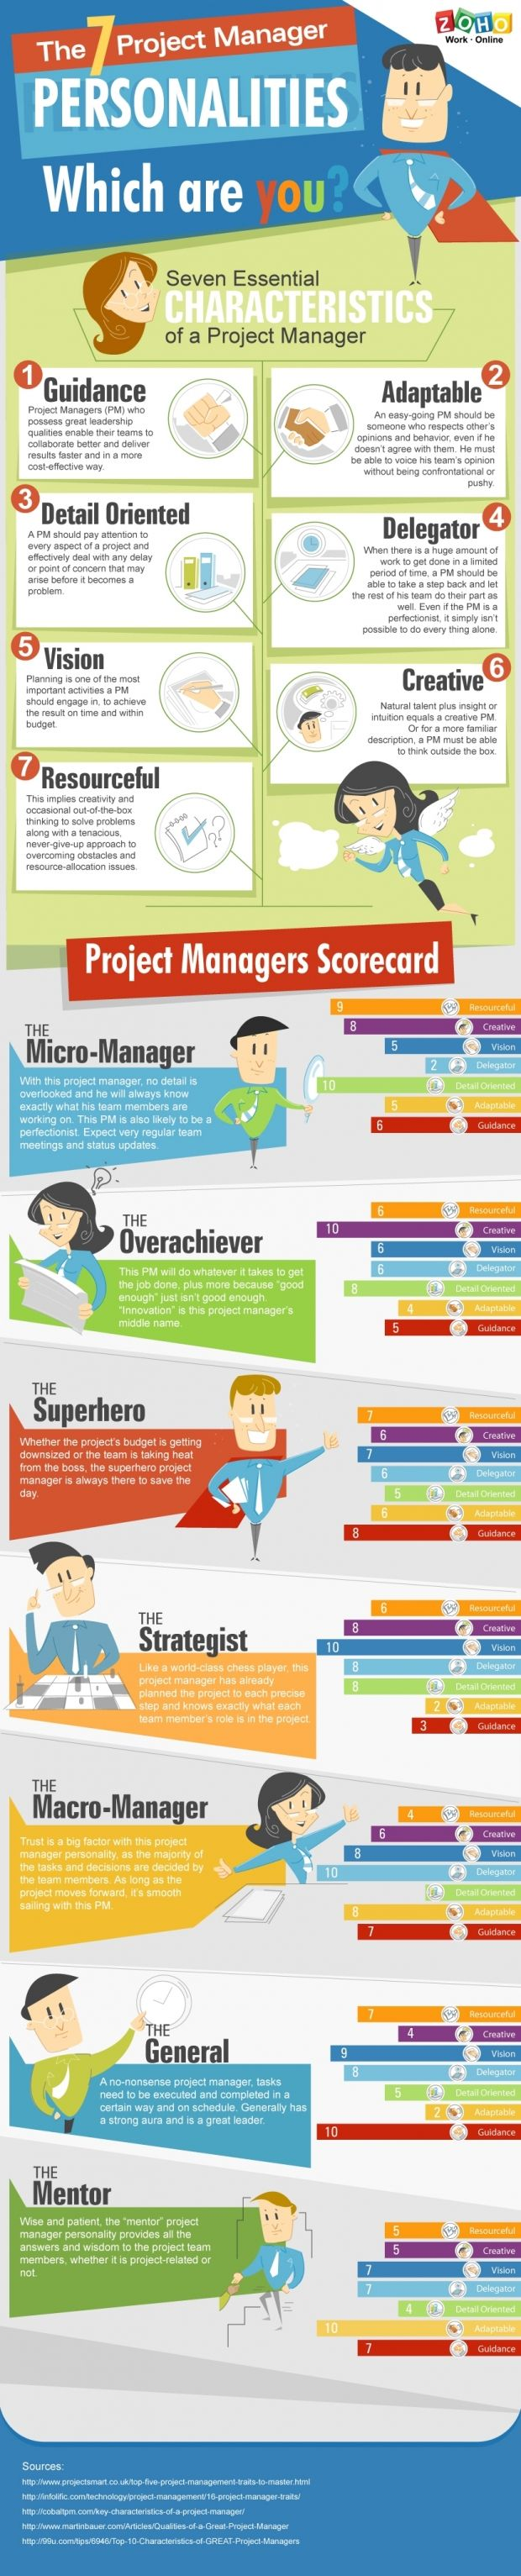 Project Manager Personalities